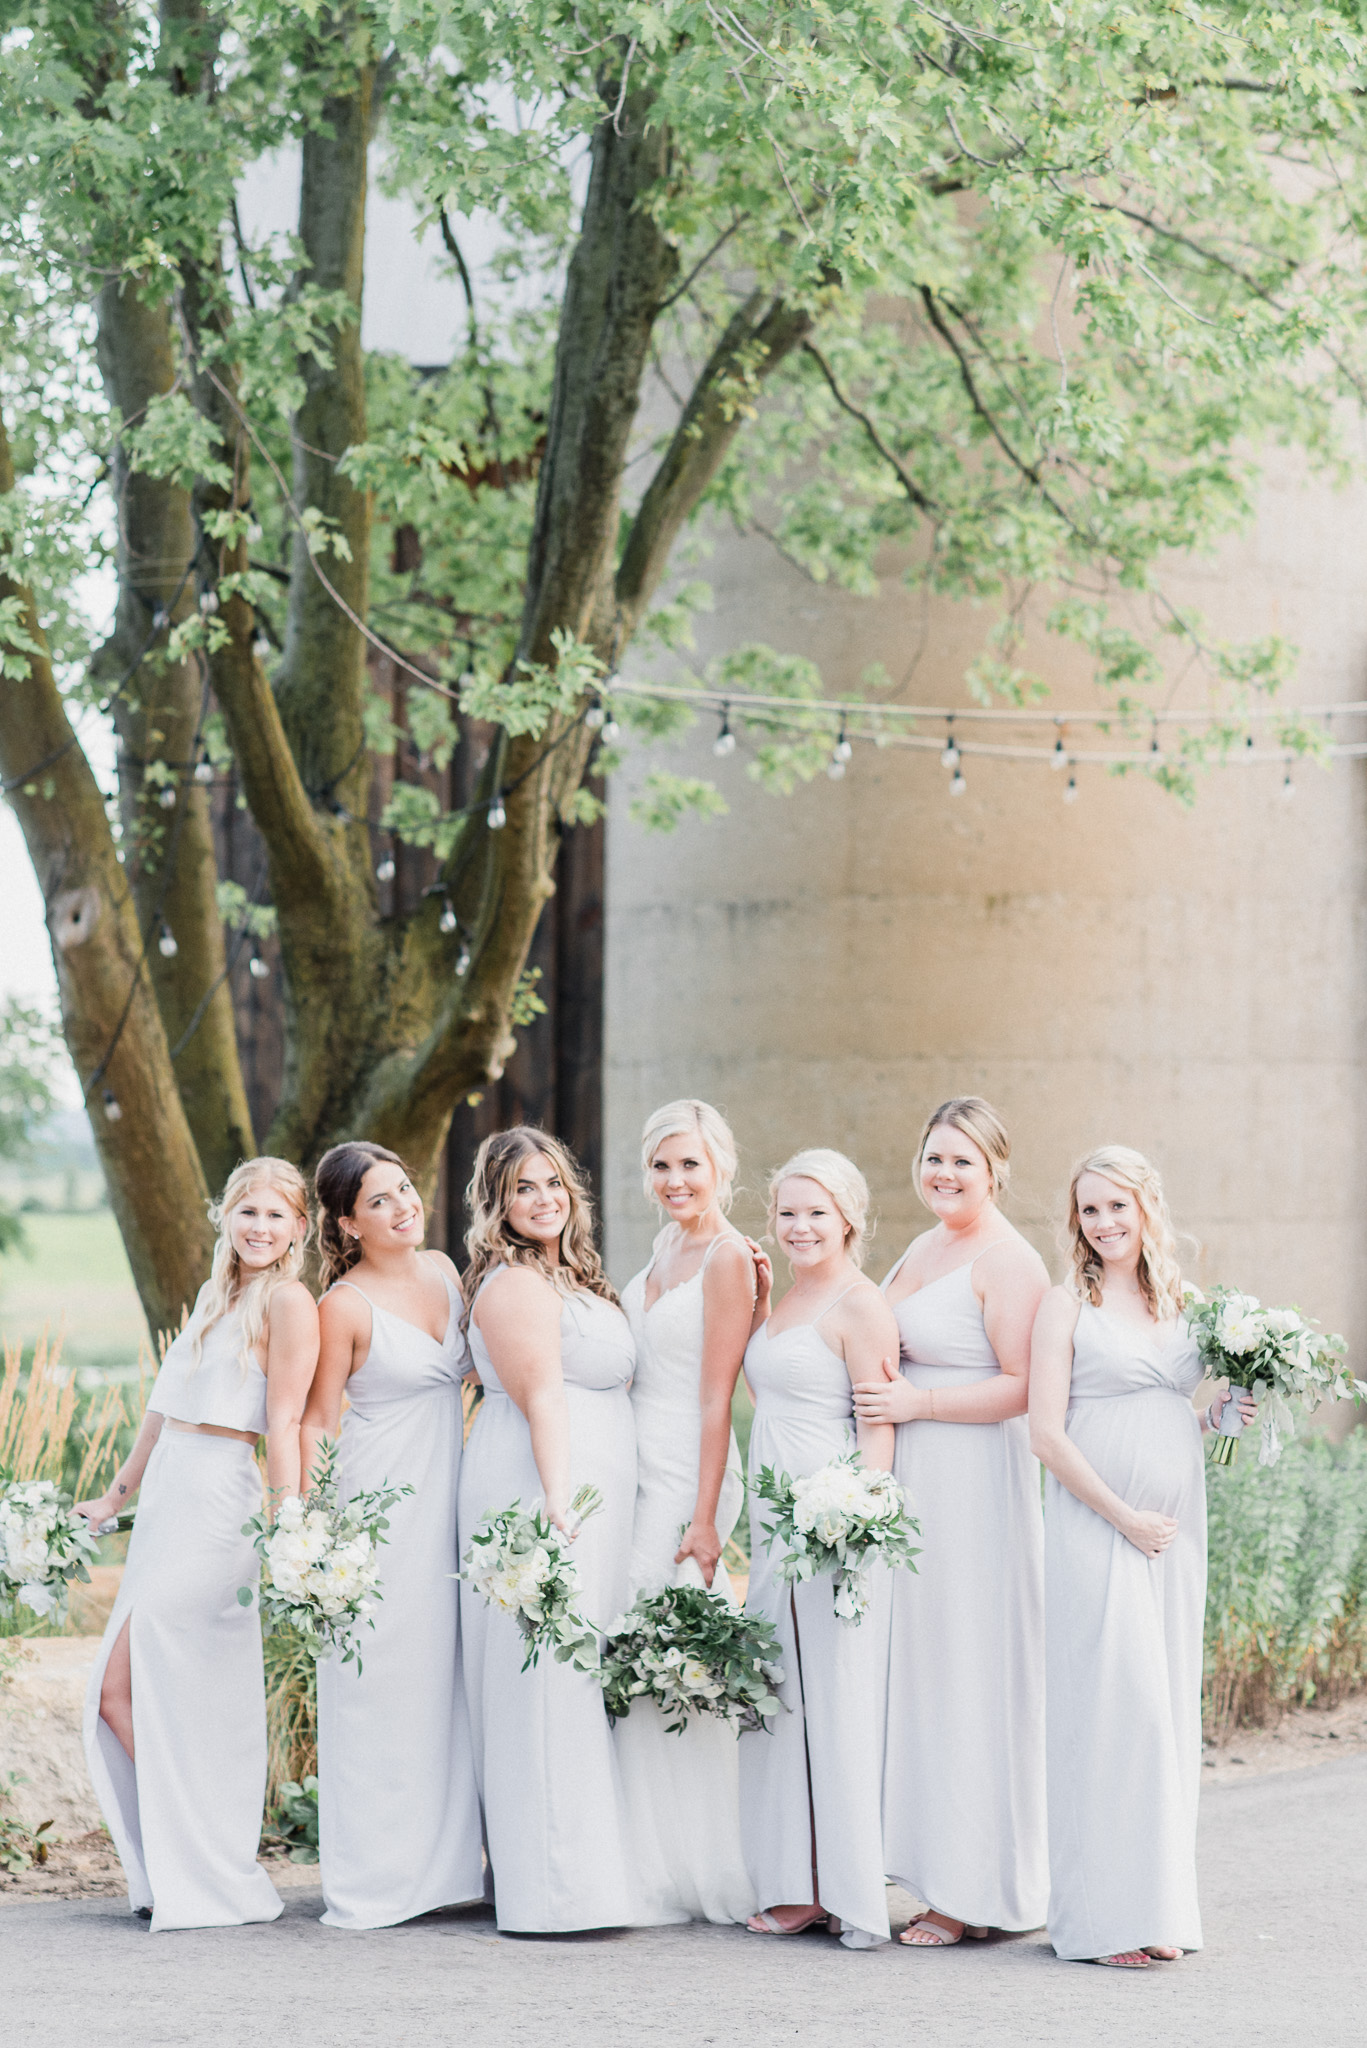 Bridesmaids in 'Dove Drey' Park & Fifth Co dresses by Jenn Kavanagh Photography